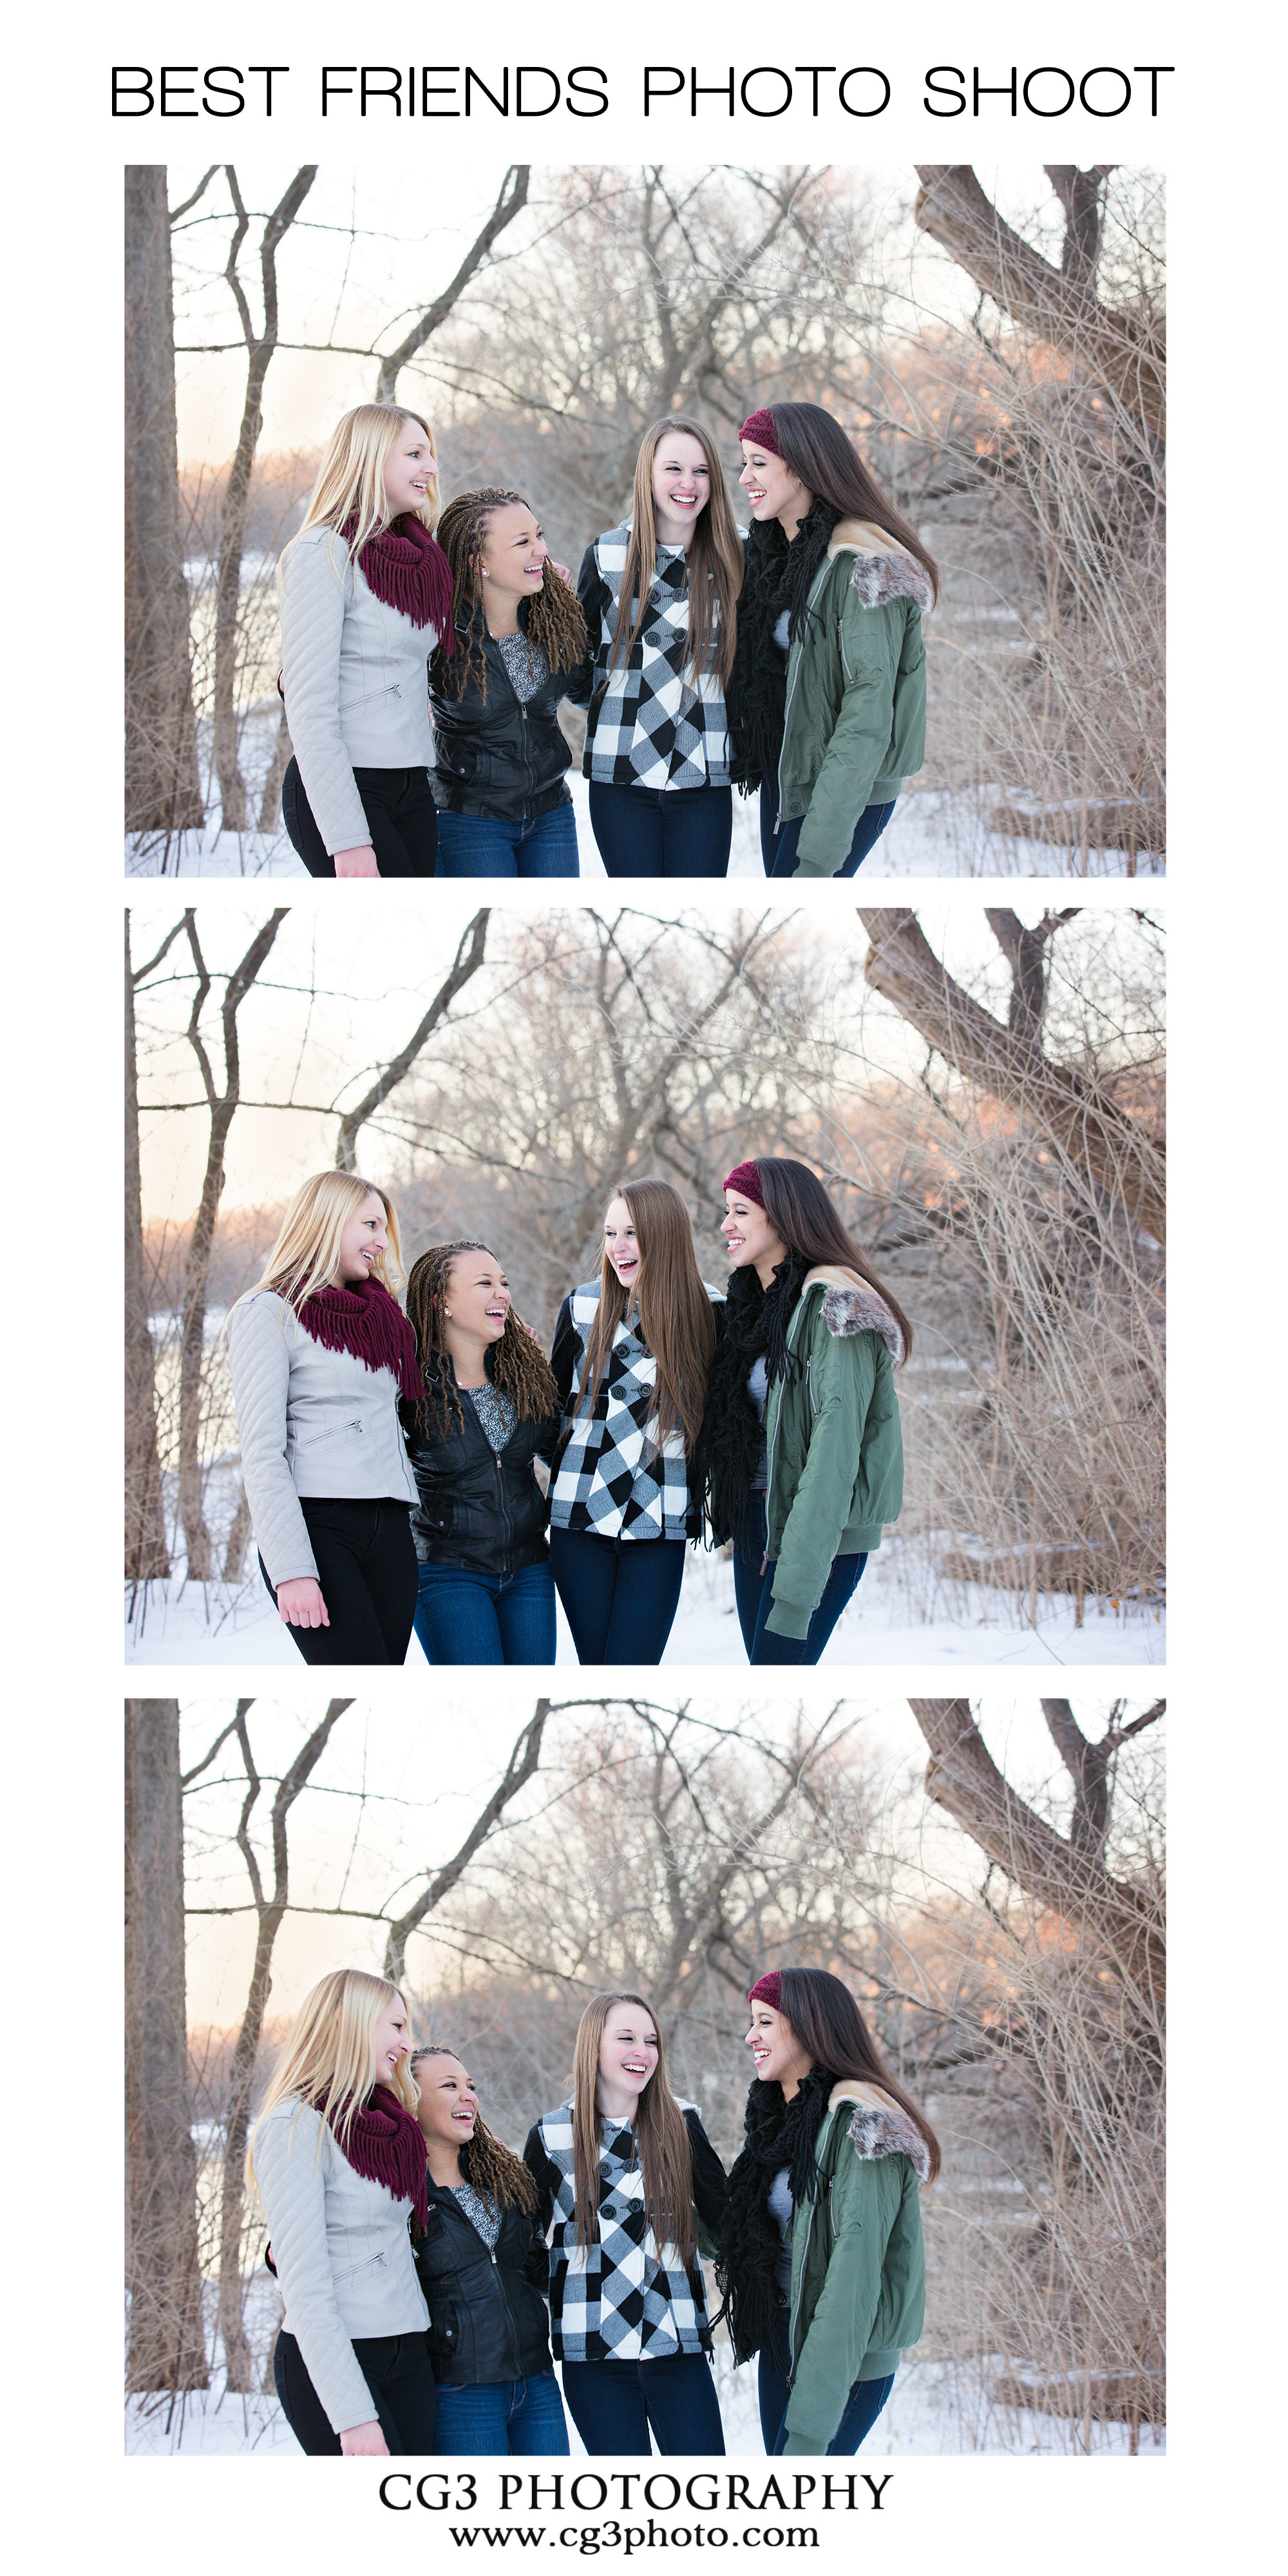 High School Best Friends Photo Shoot Collage